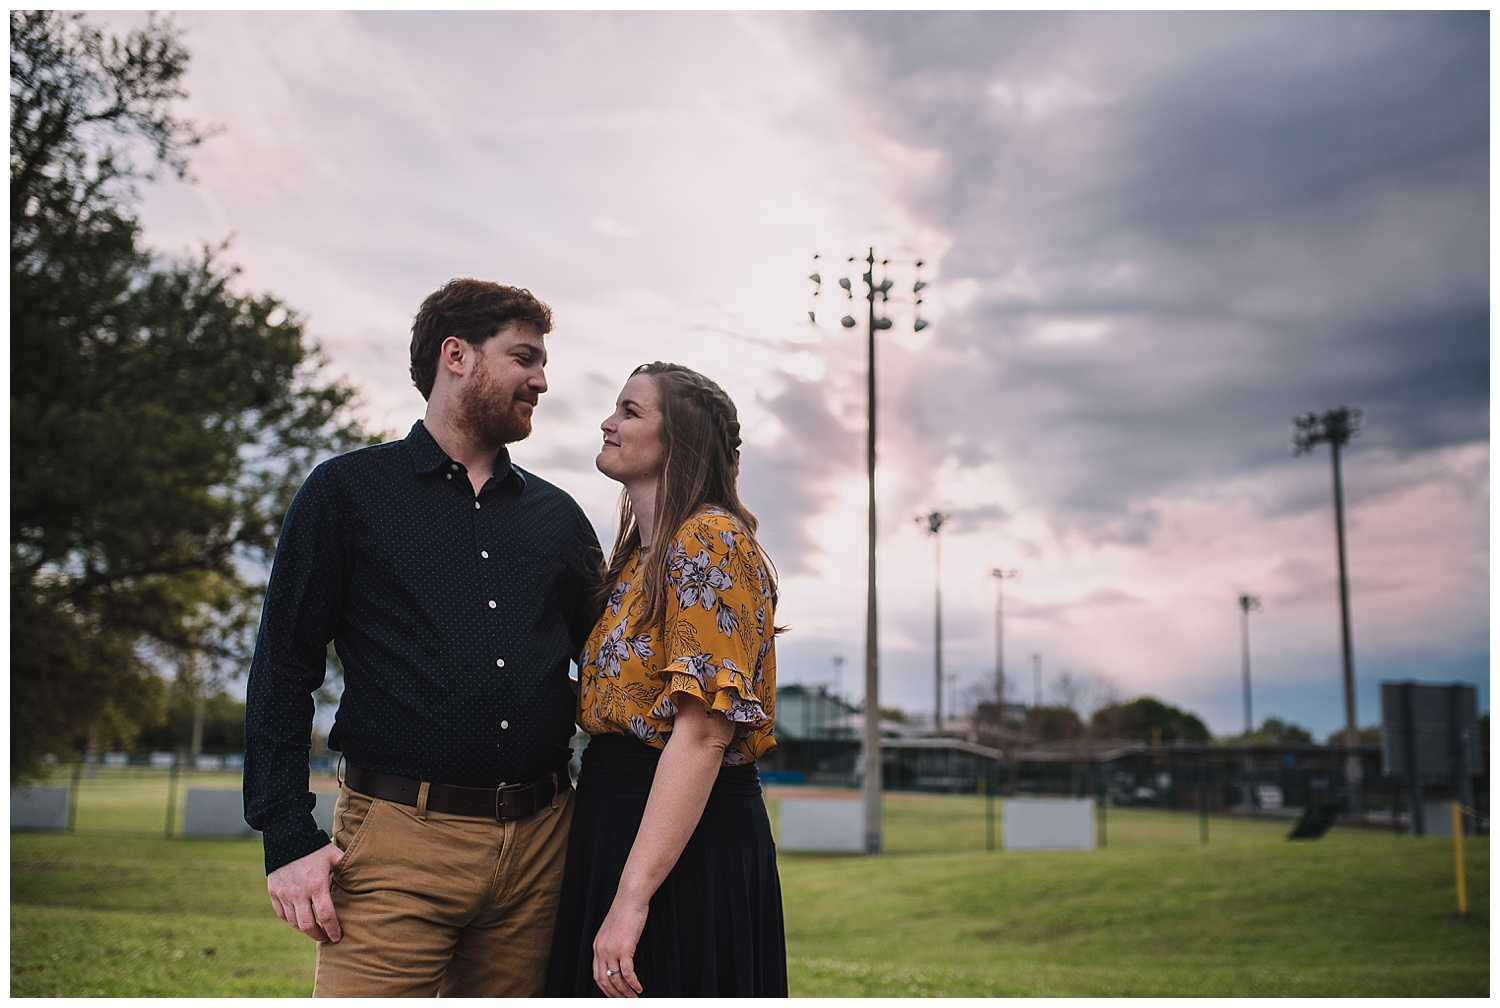 Matt and Carly Engagement - The Fly New Orleans - Kallistia Photography_0035.jpg